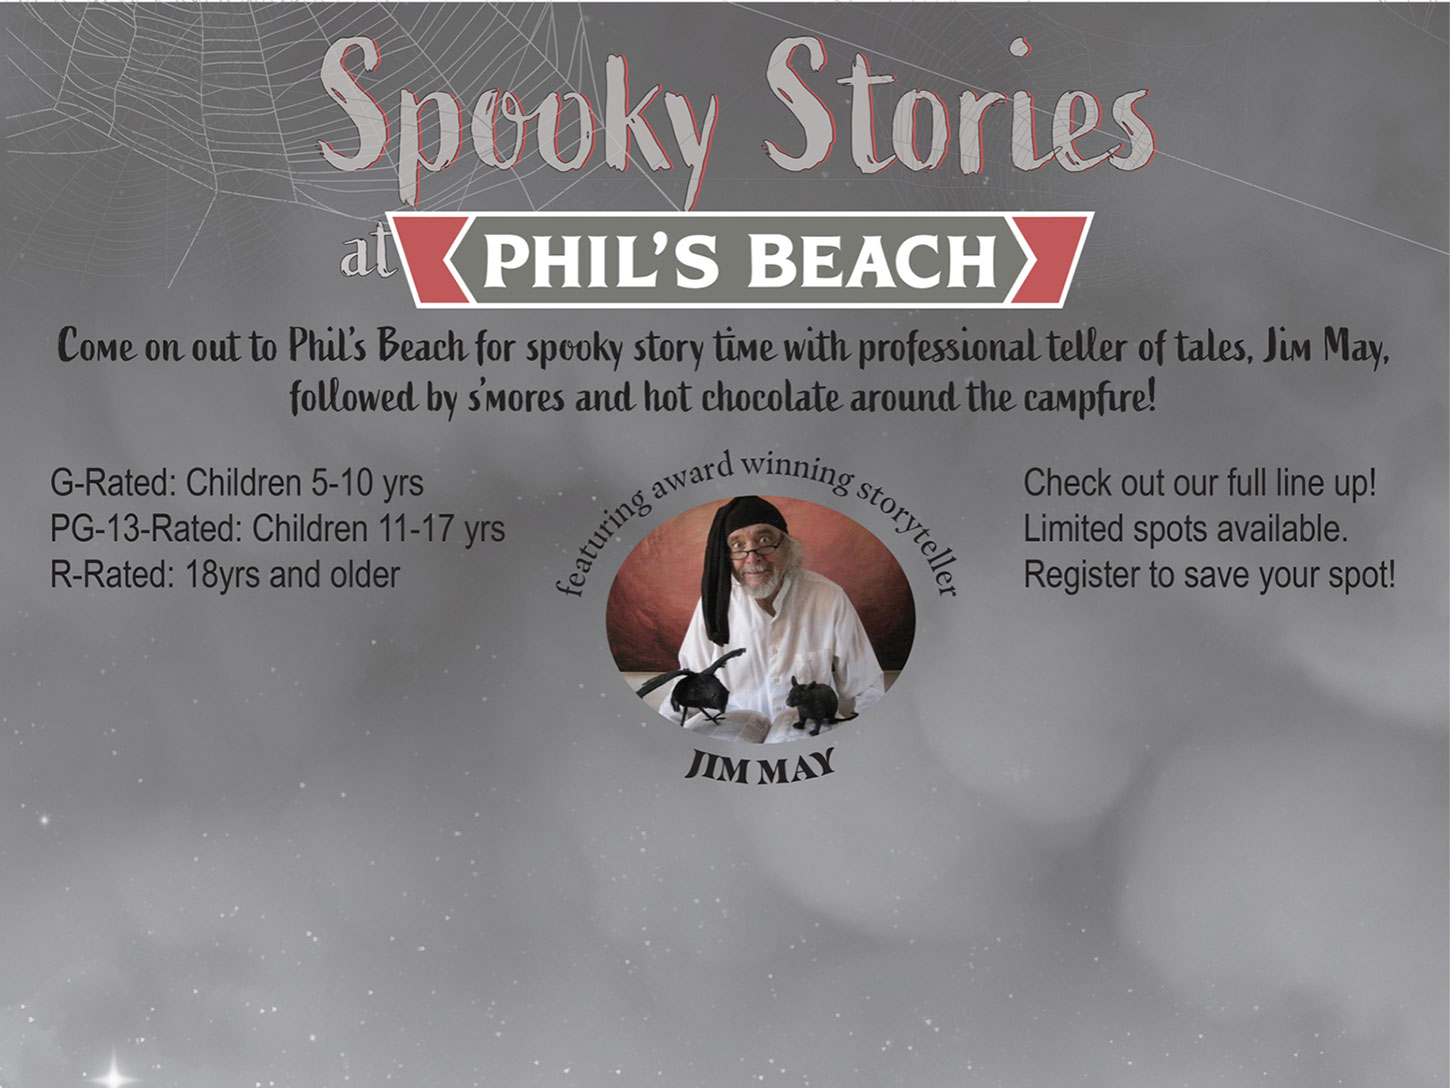 Spooky Stories at Phil's Beach in Wauconda